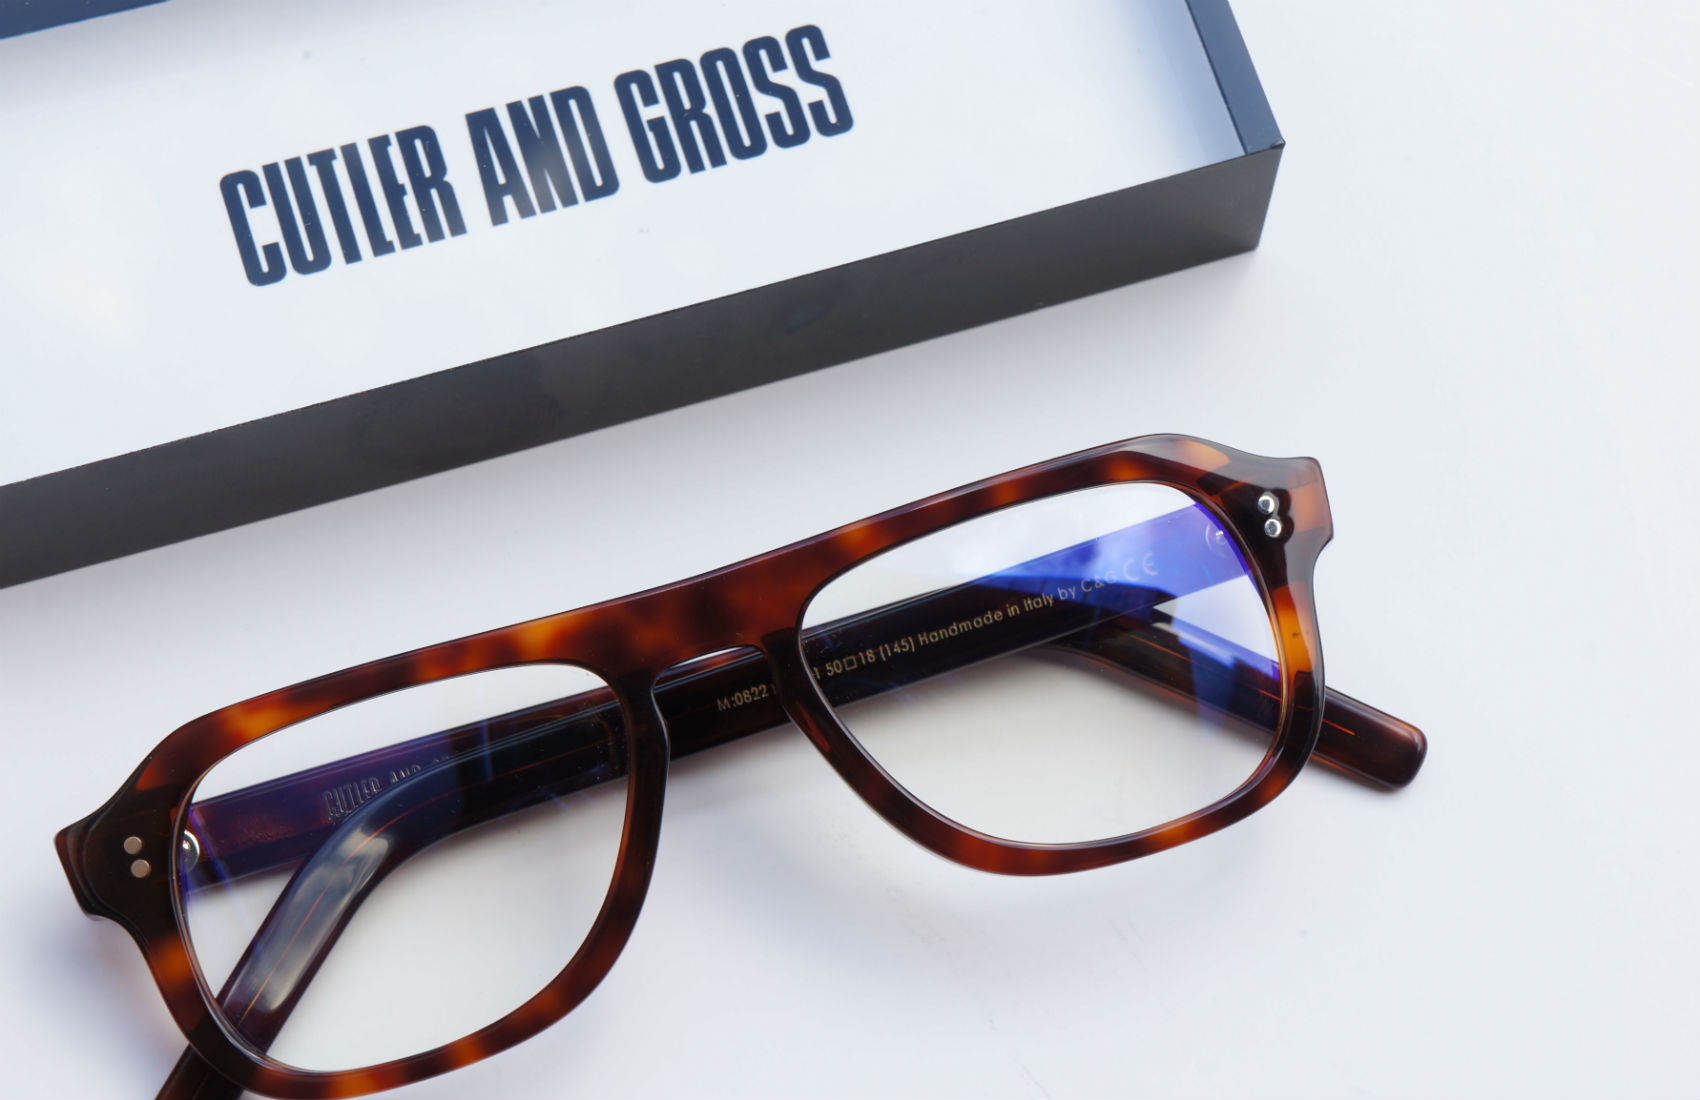 CUTLER AND GROSS OF LONDON